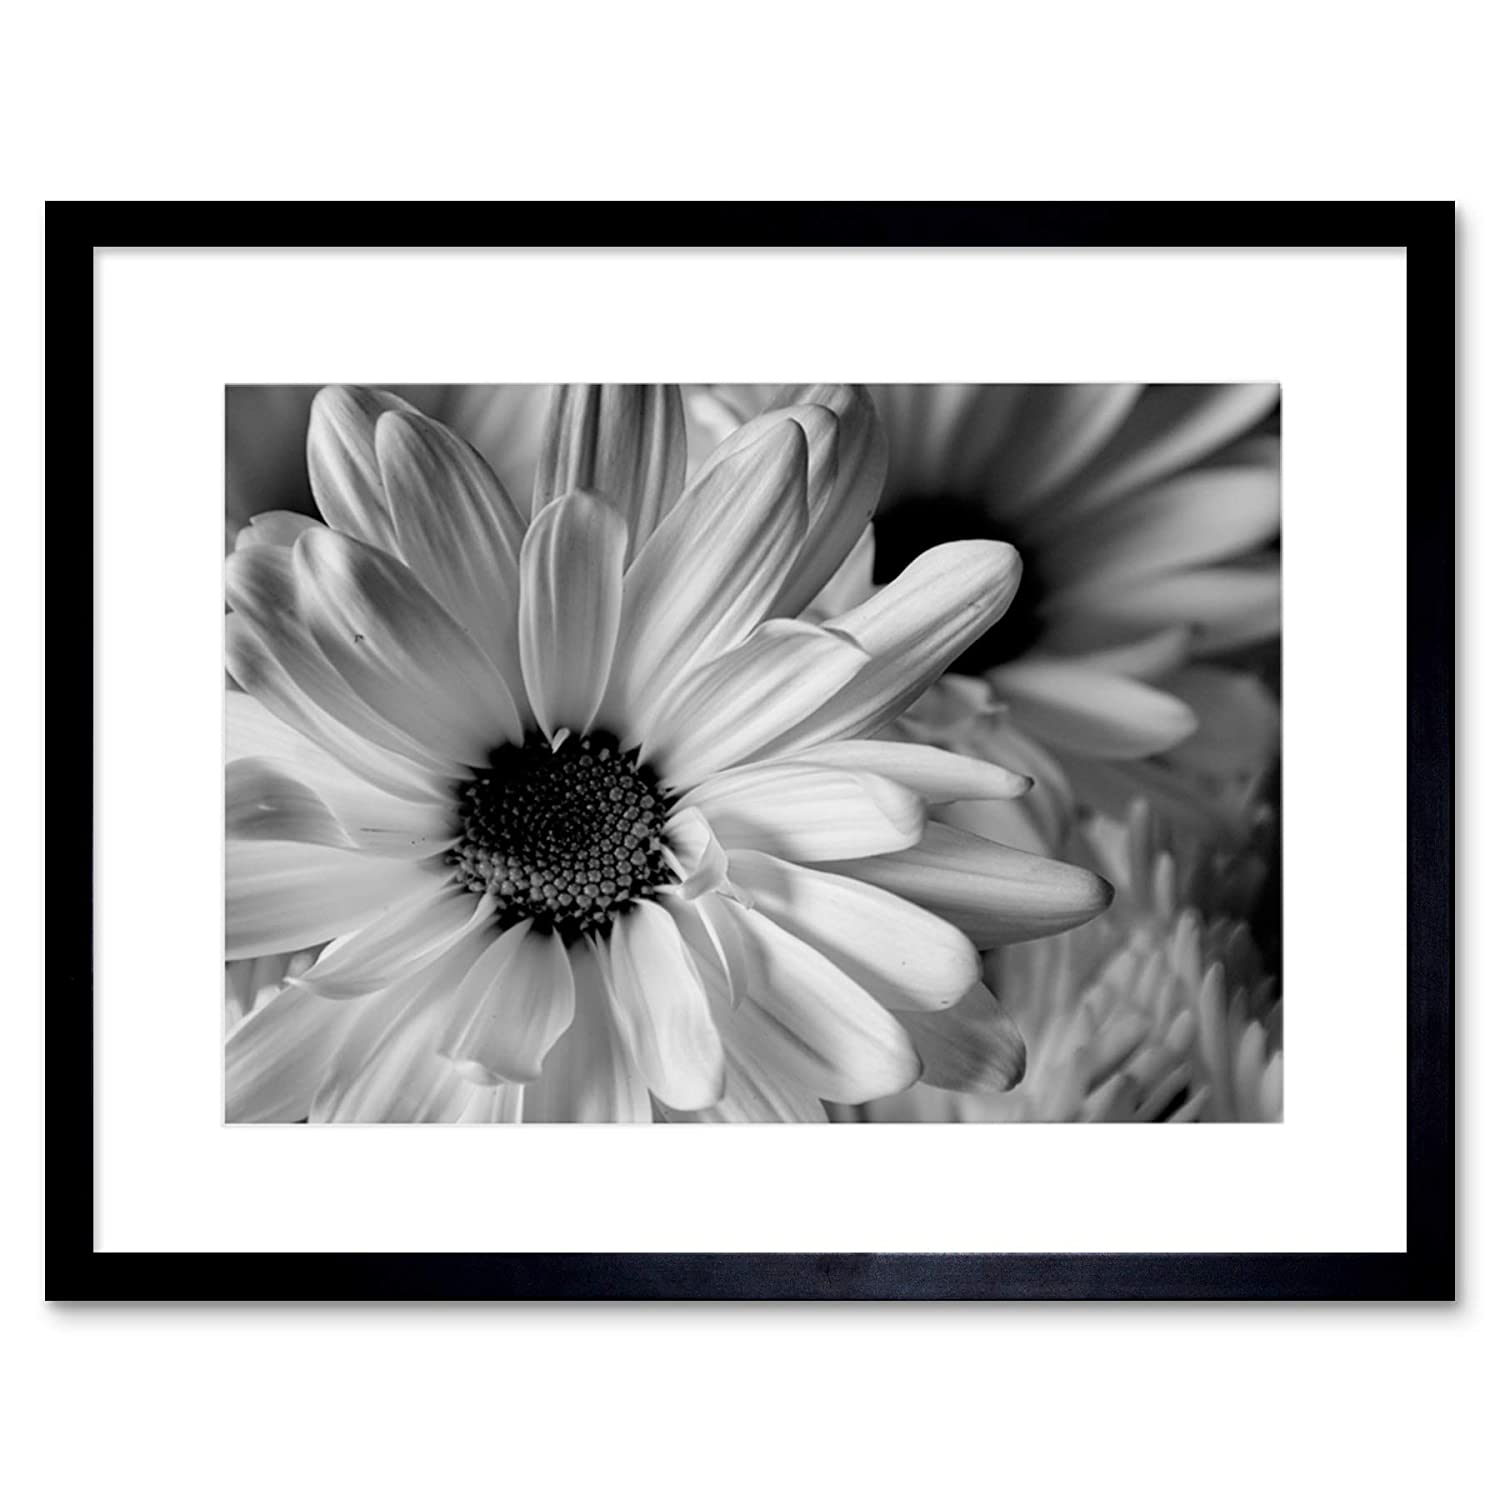 Amazon com the art stop photo black white flower petals framed print f12x2823 posters prints